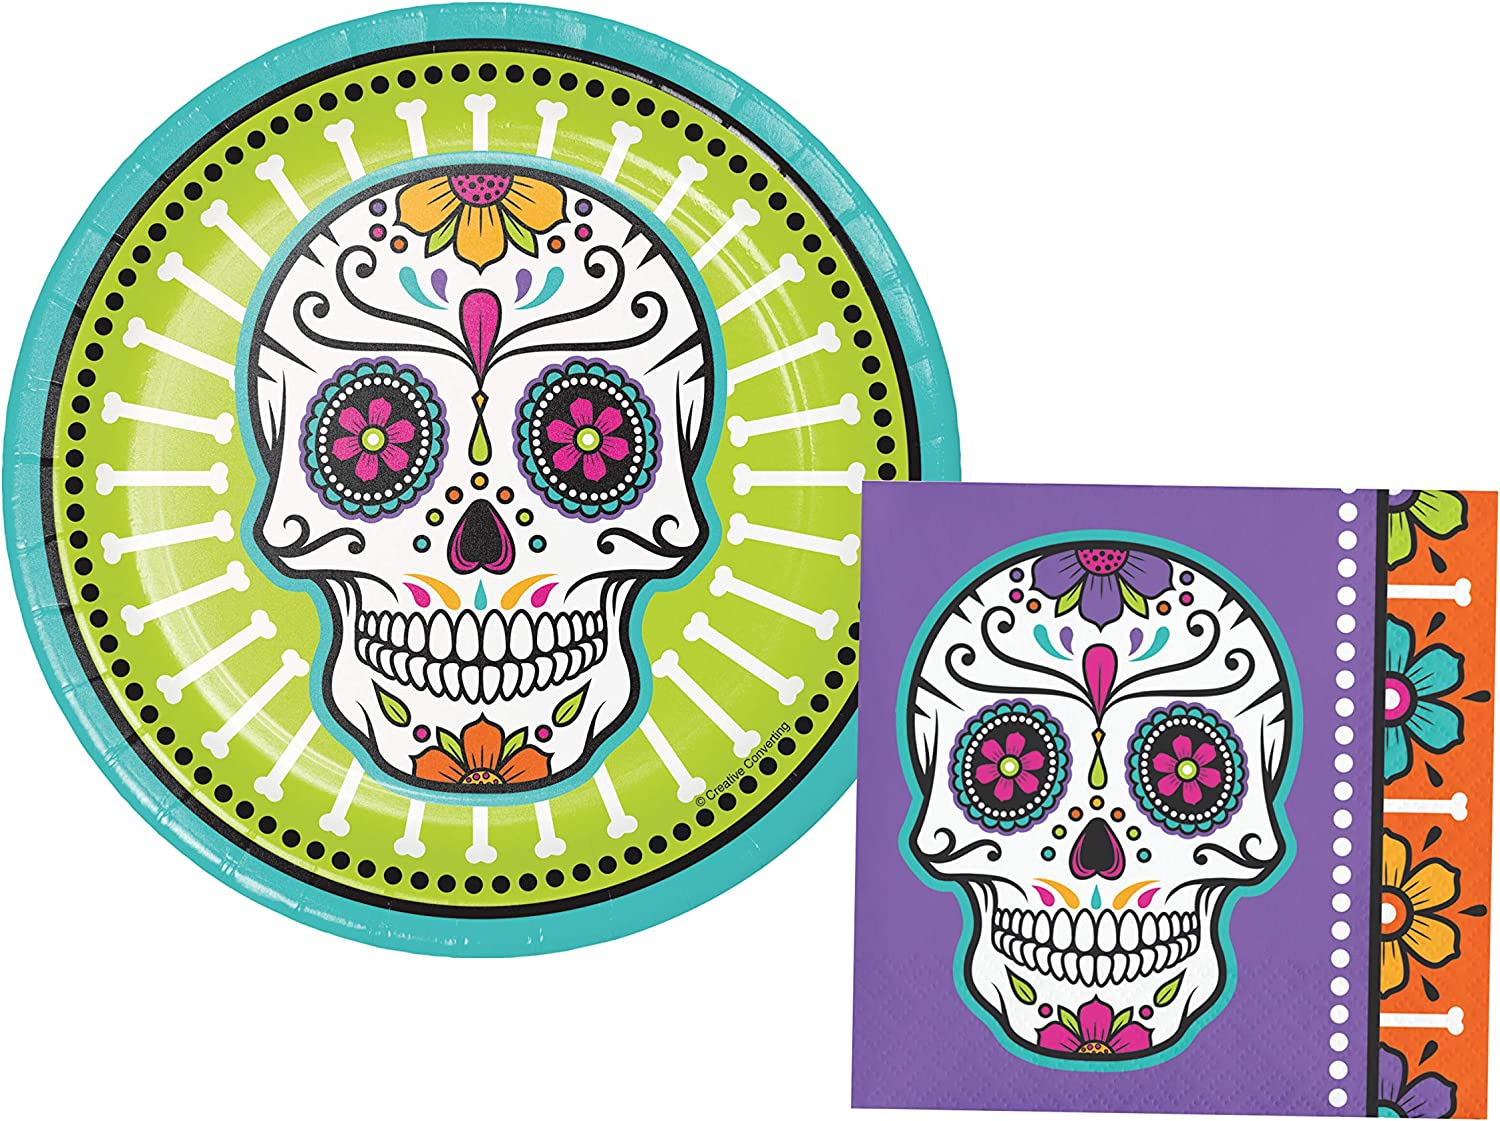 Sugar Skulls Party Supplies   Bundle Includes Paper Dessert Plates and Napkins for 16 People   Day of the Dead Design